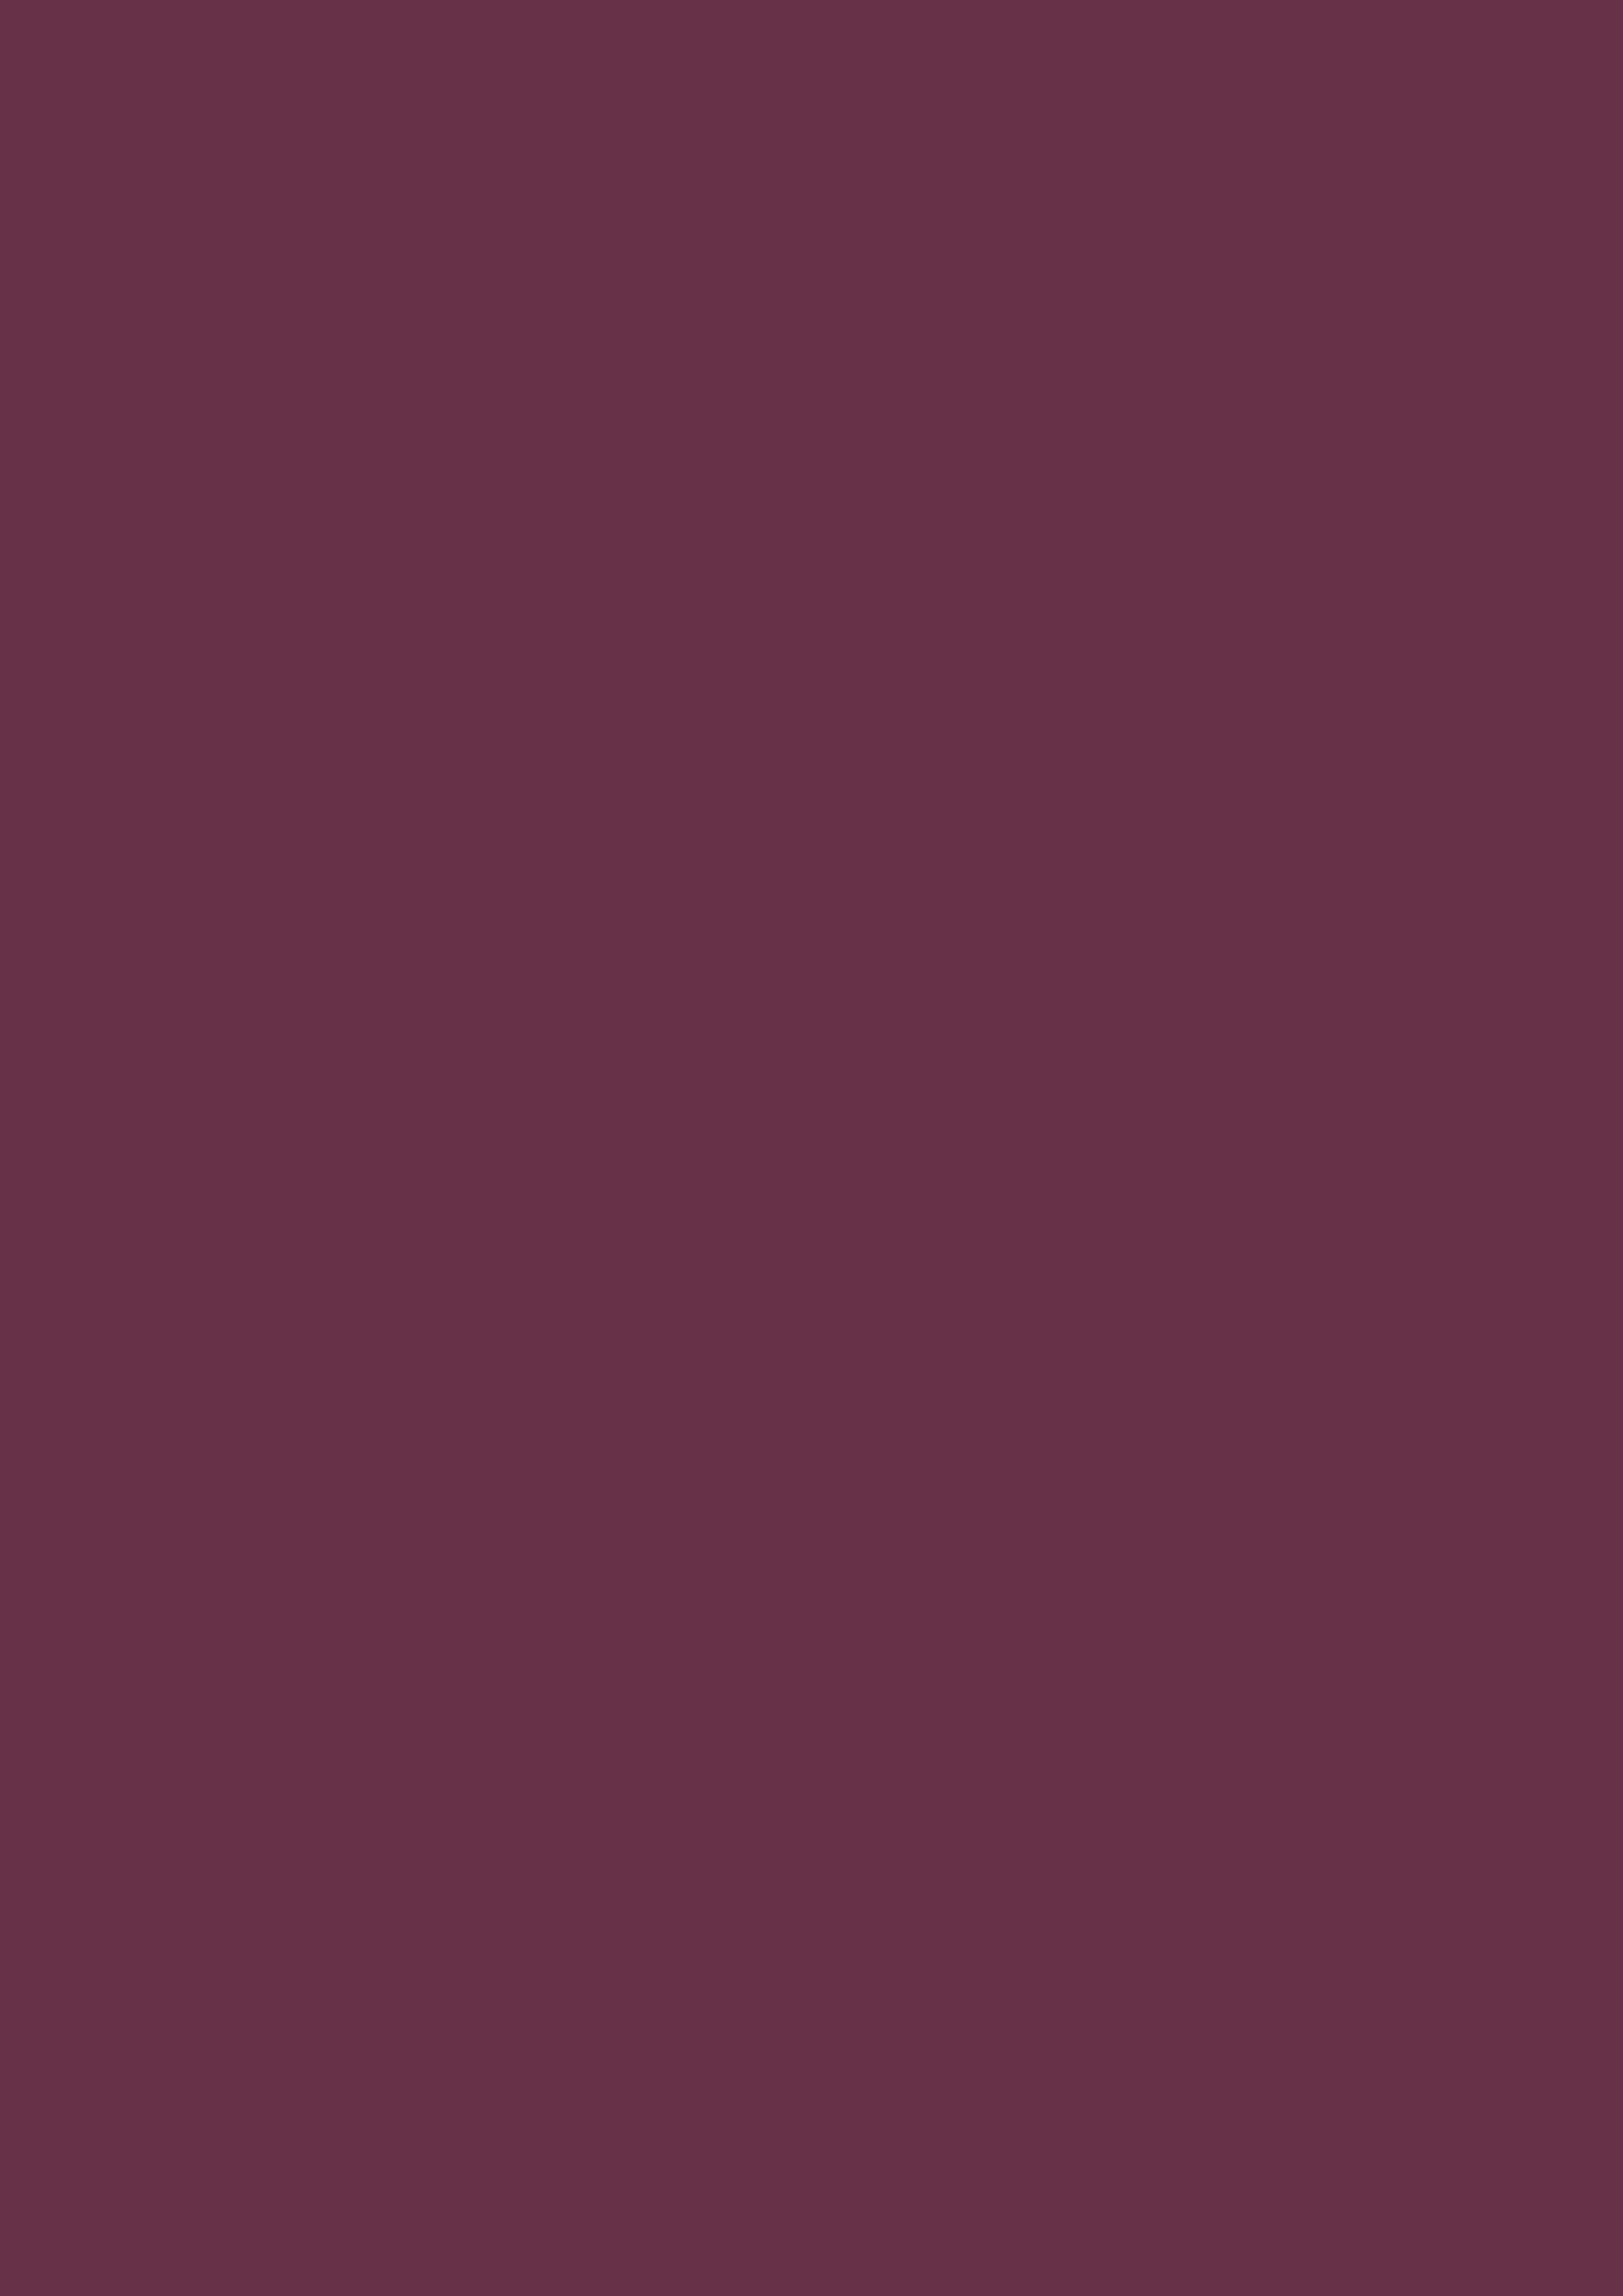 2480x3508 Wine Dregs Solid Color Background